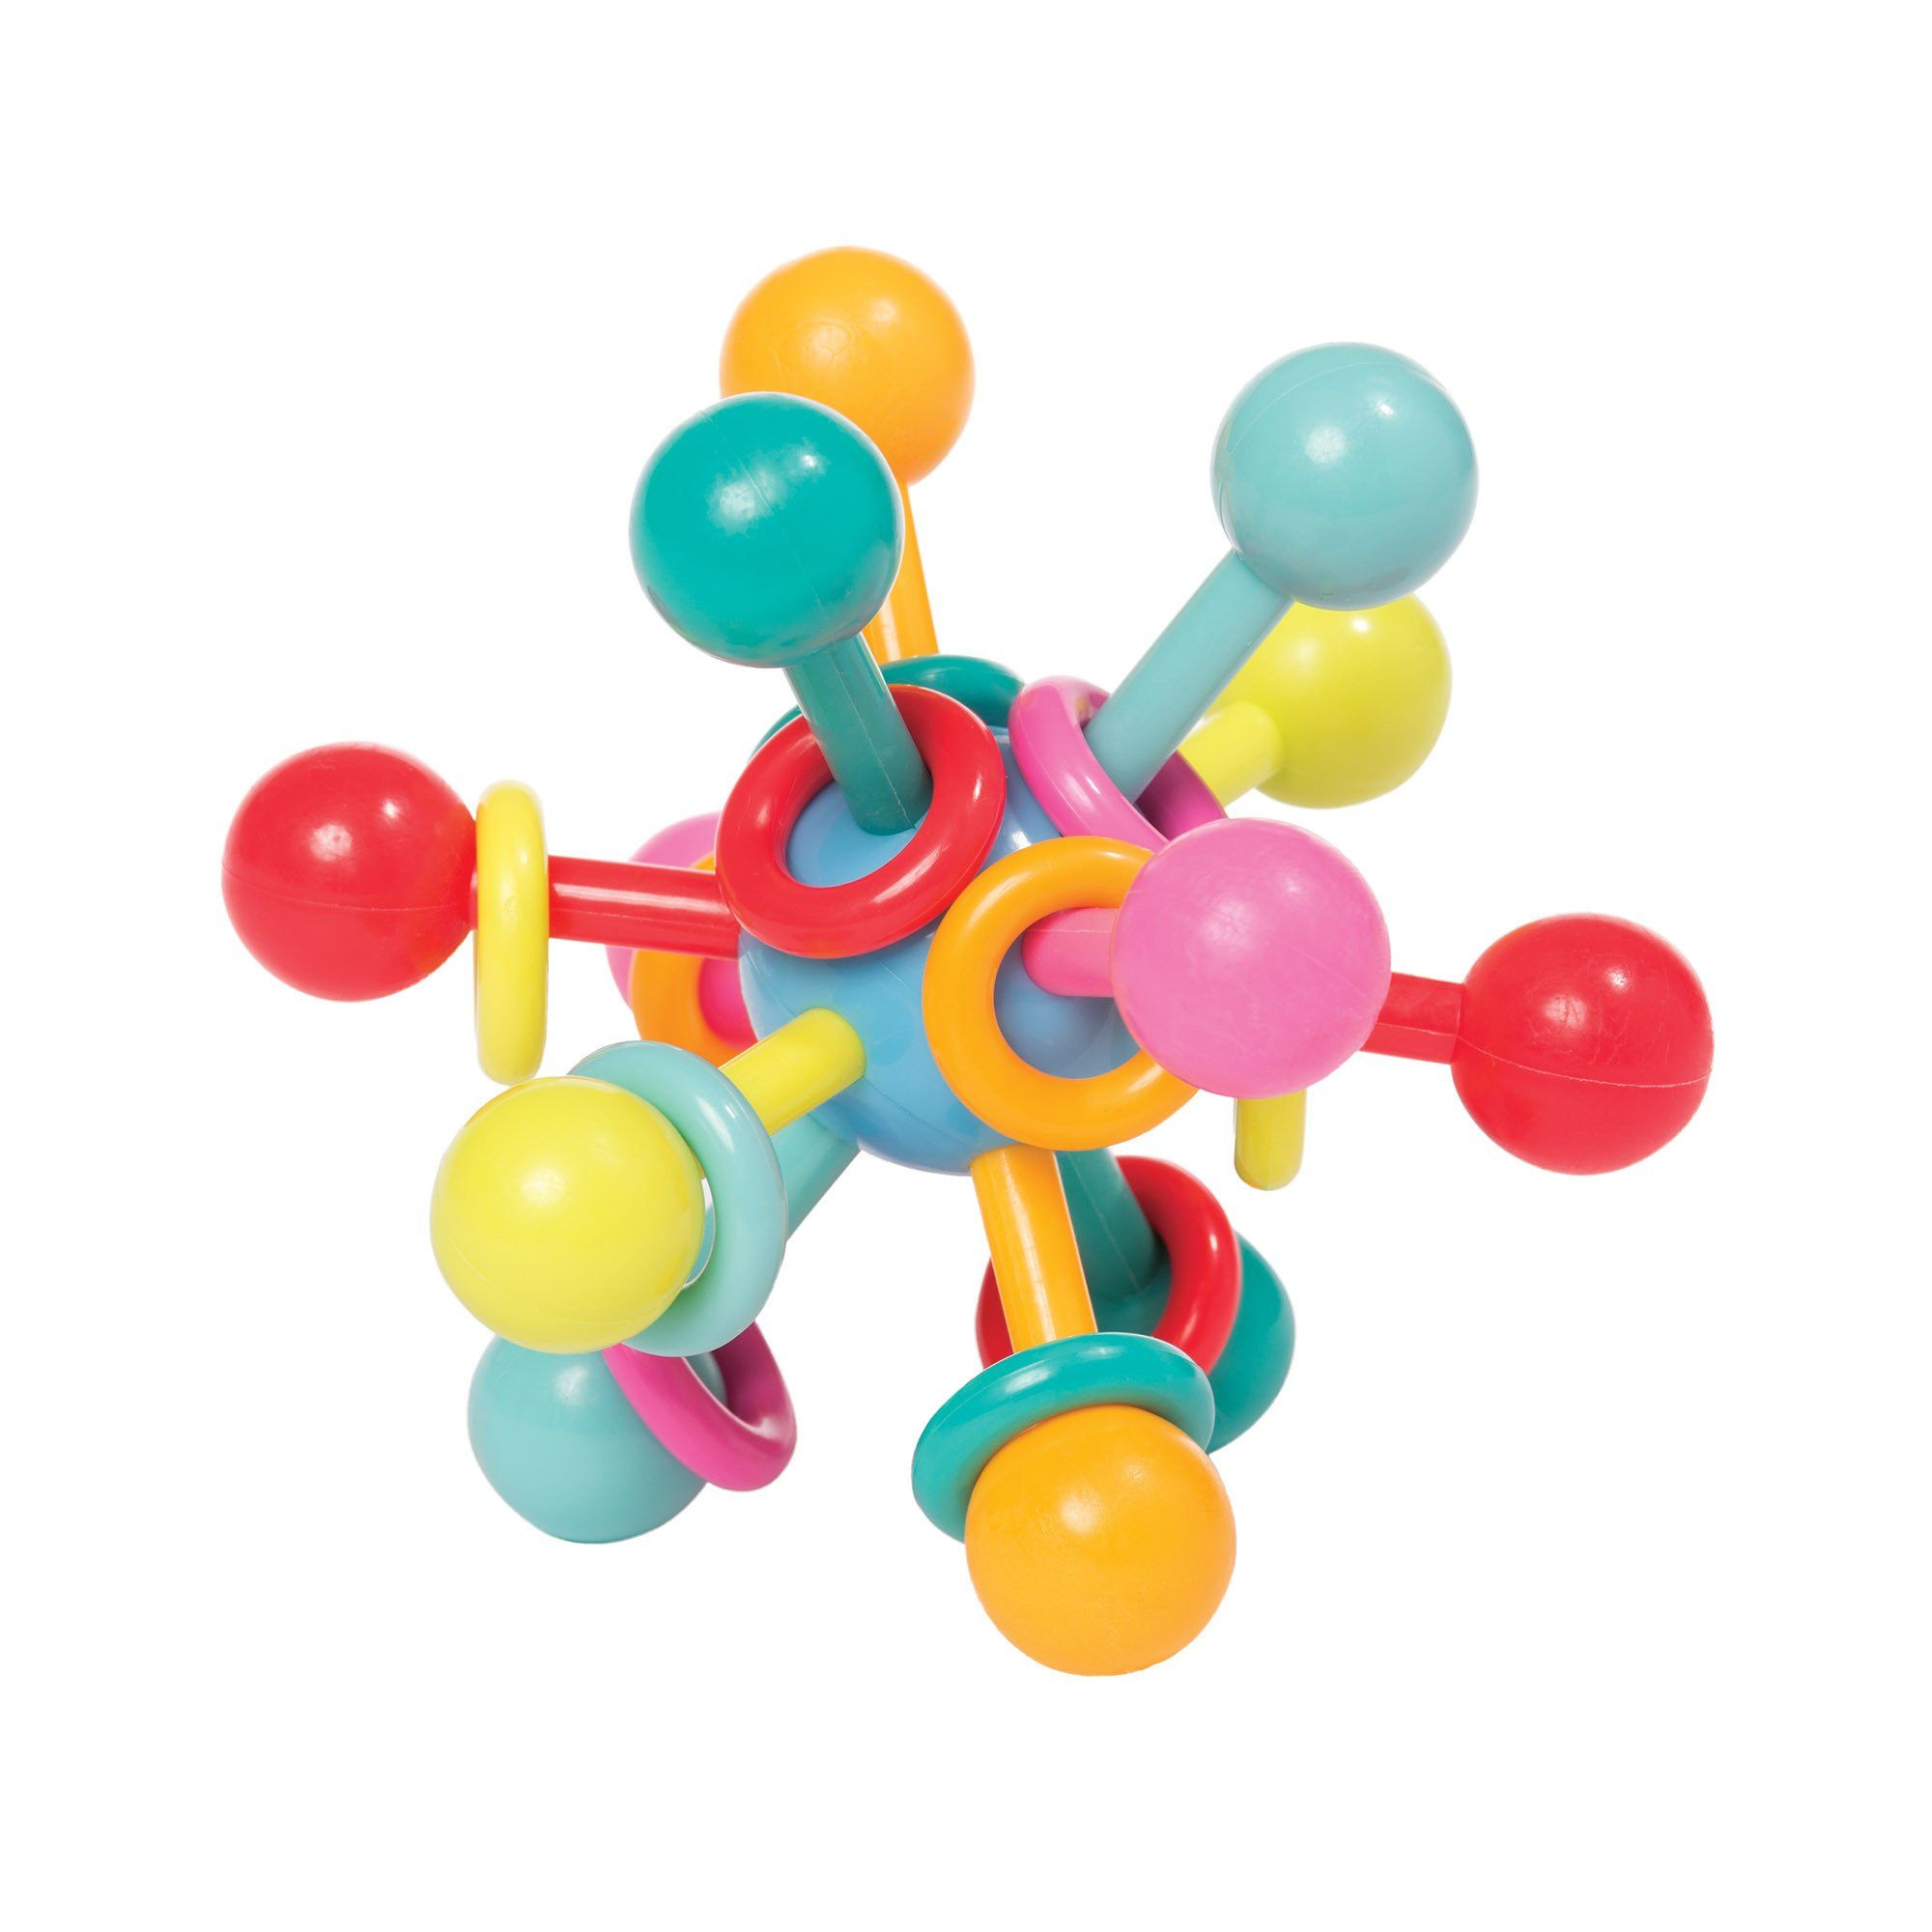 Atom Teether Toy Infant Rattle Teether By Manhattan Toy